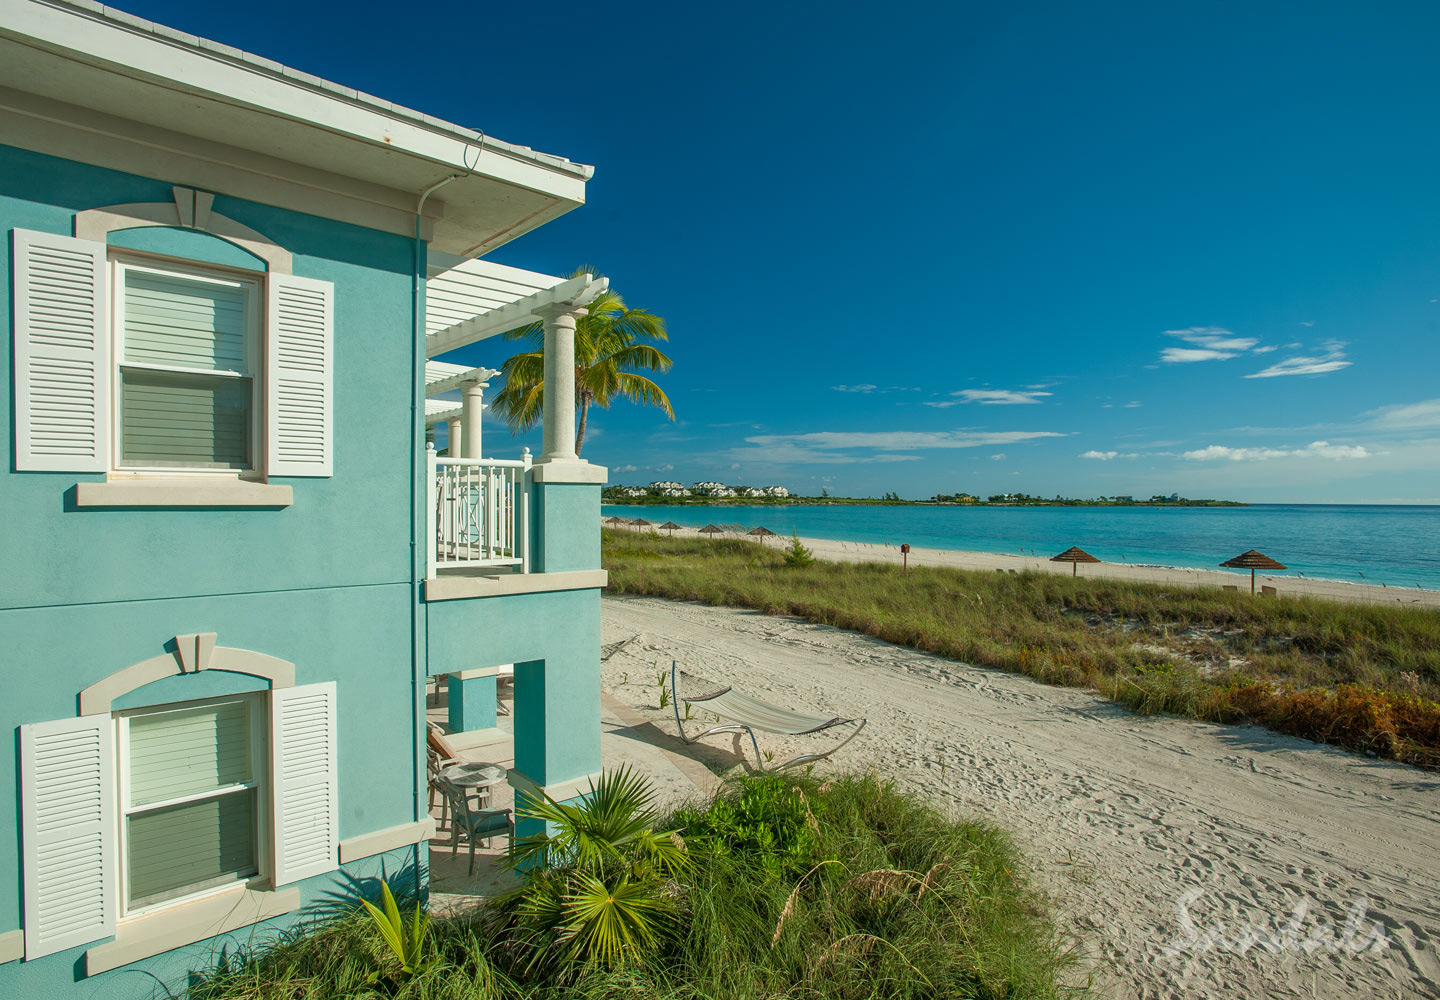 Travel Agency All-Inclusive Resort Sandals Emerald Bay 106